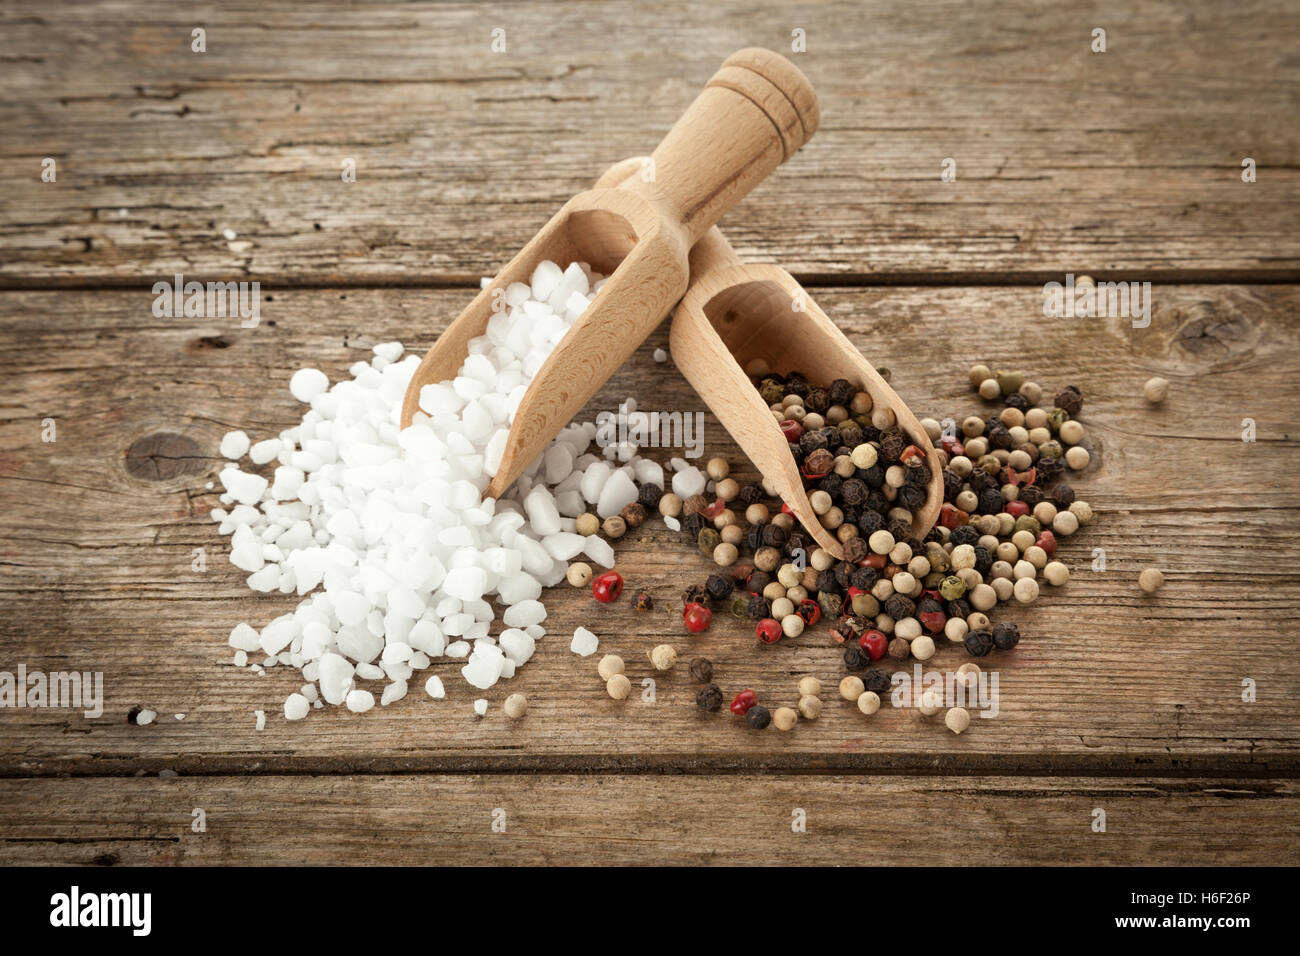 Large-grained salt and mixed peppercorns on wooden shovels, on rustic table, high angle view - Stock Image